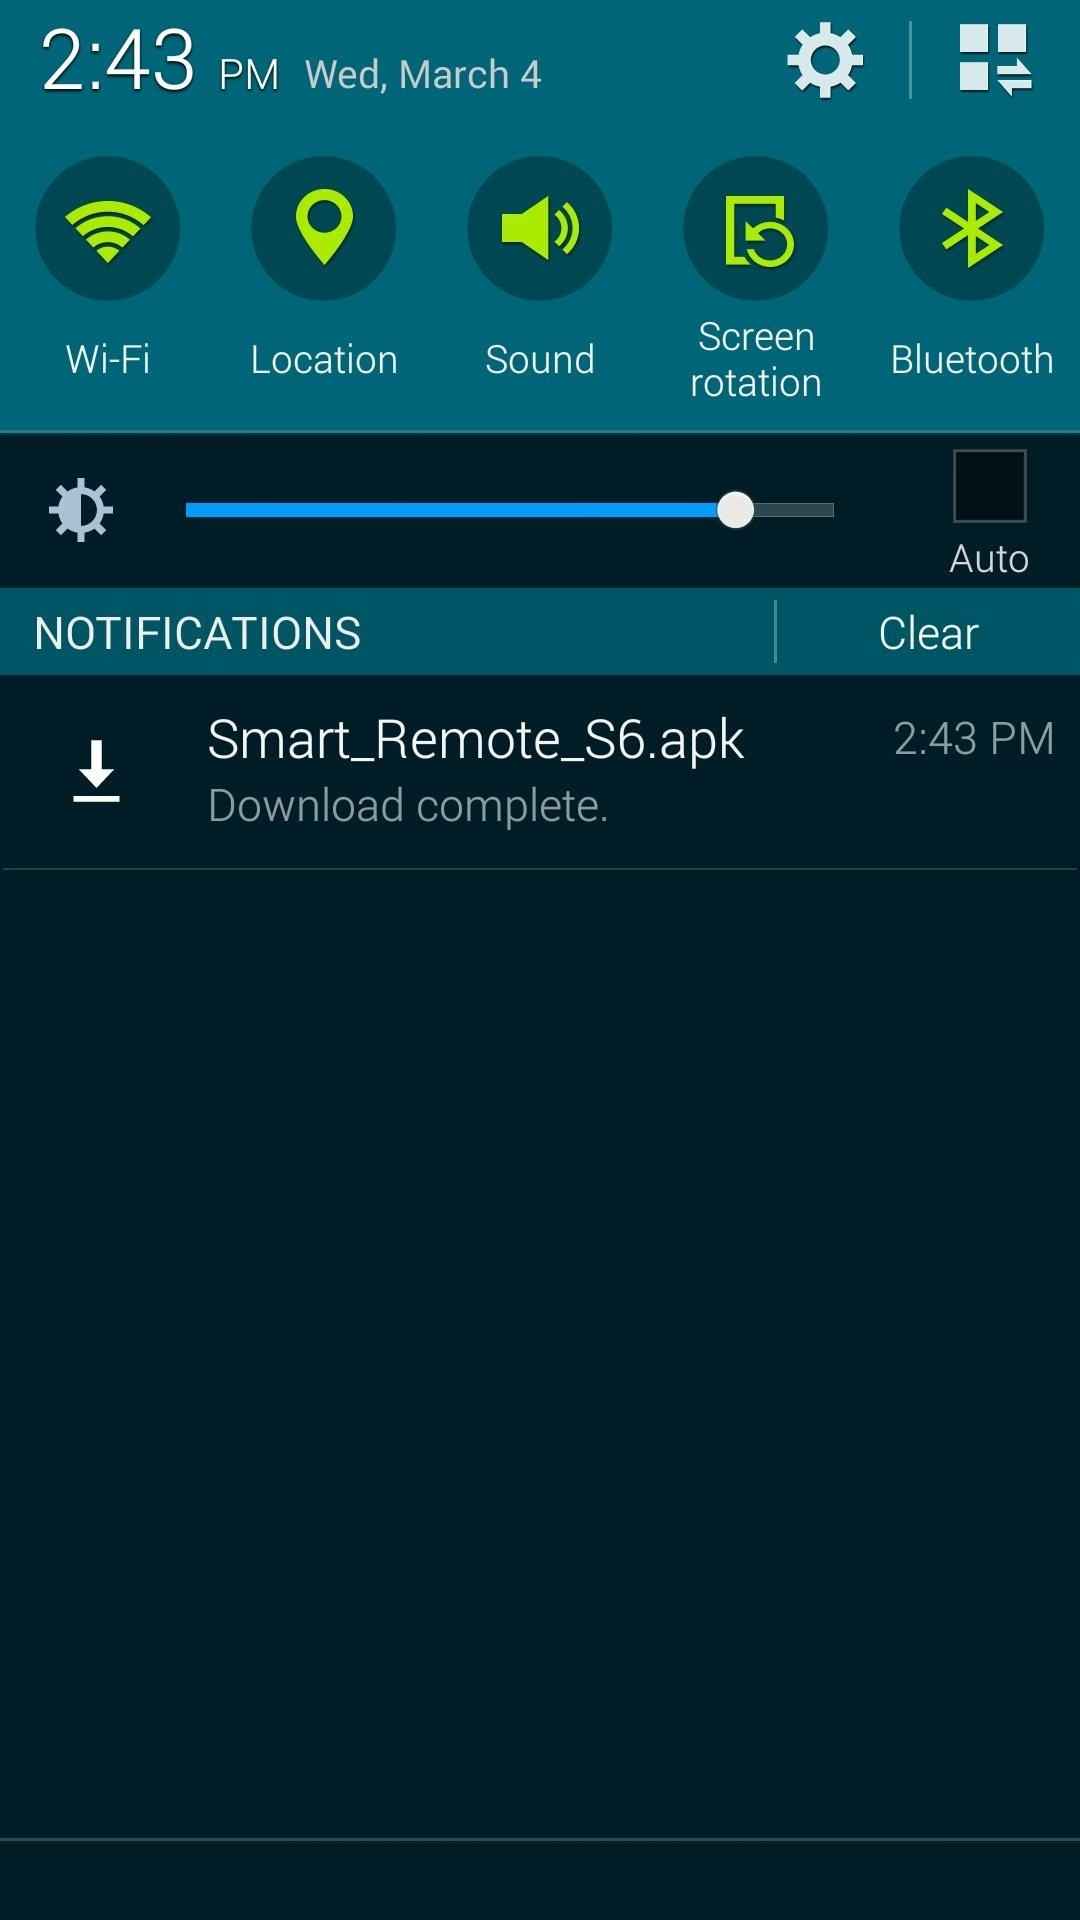 Get the New 'Smart Remote' App from the Samsung Galaxy S6 on Any Galaxy Device